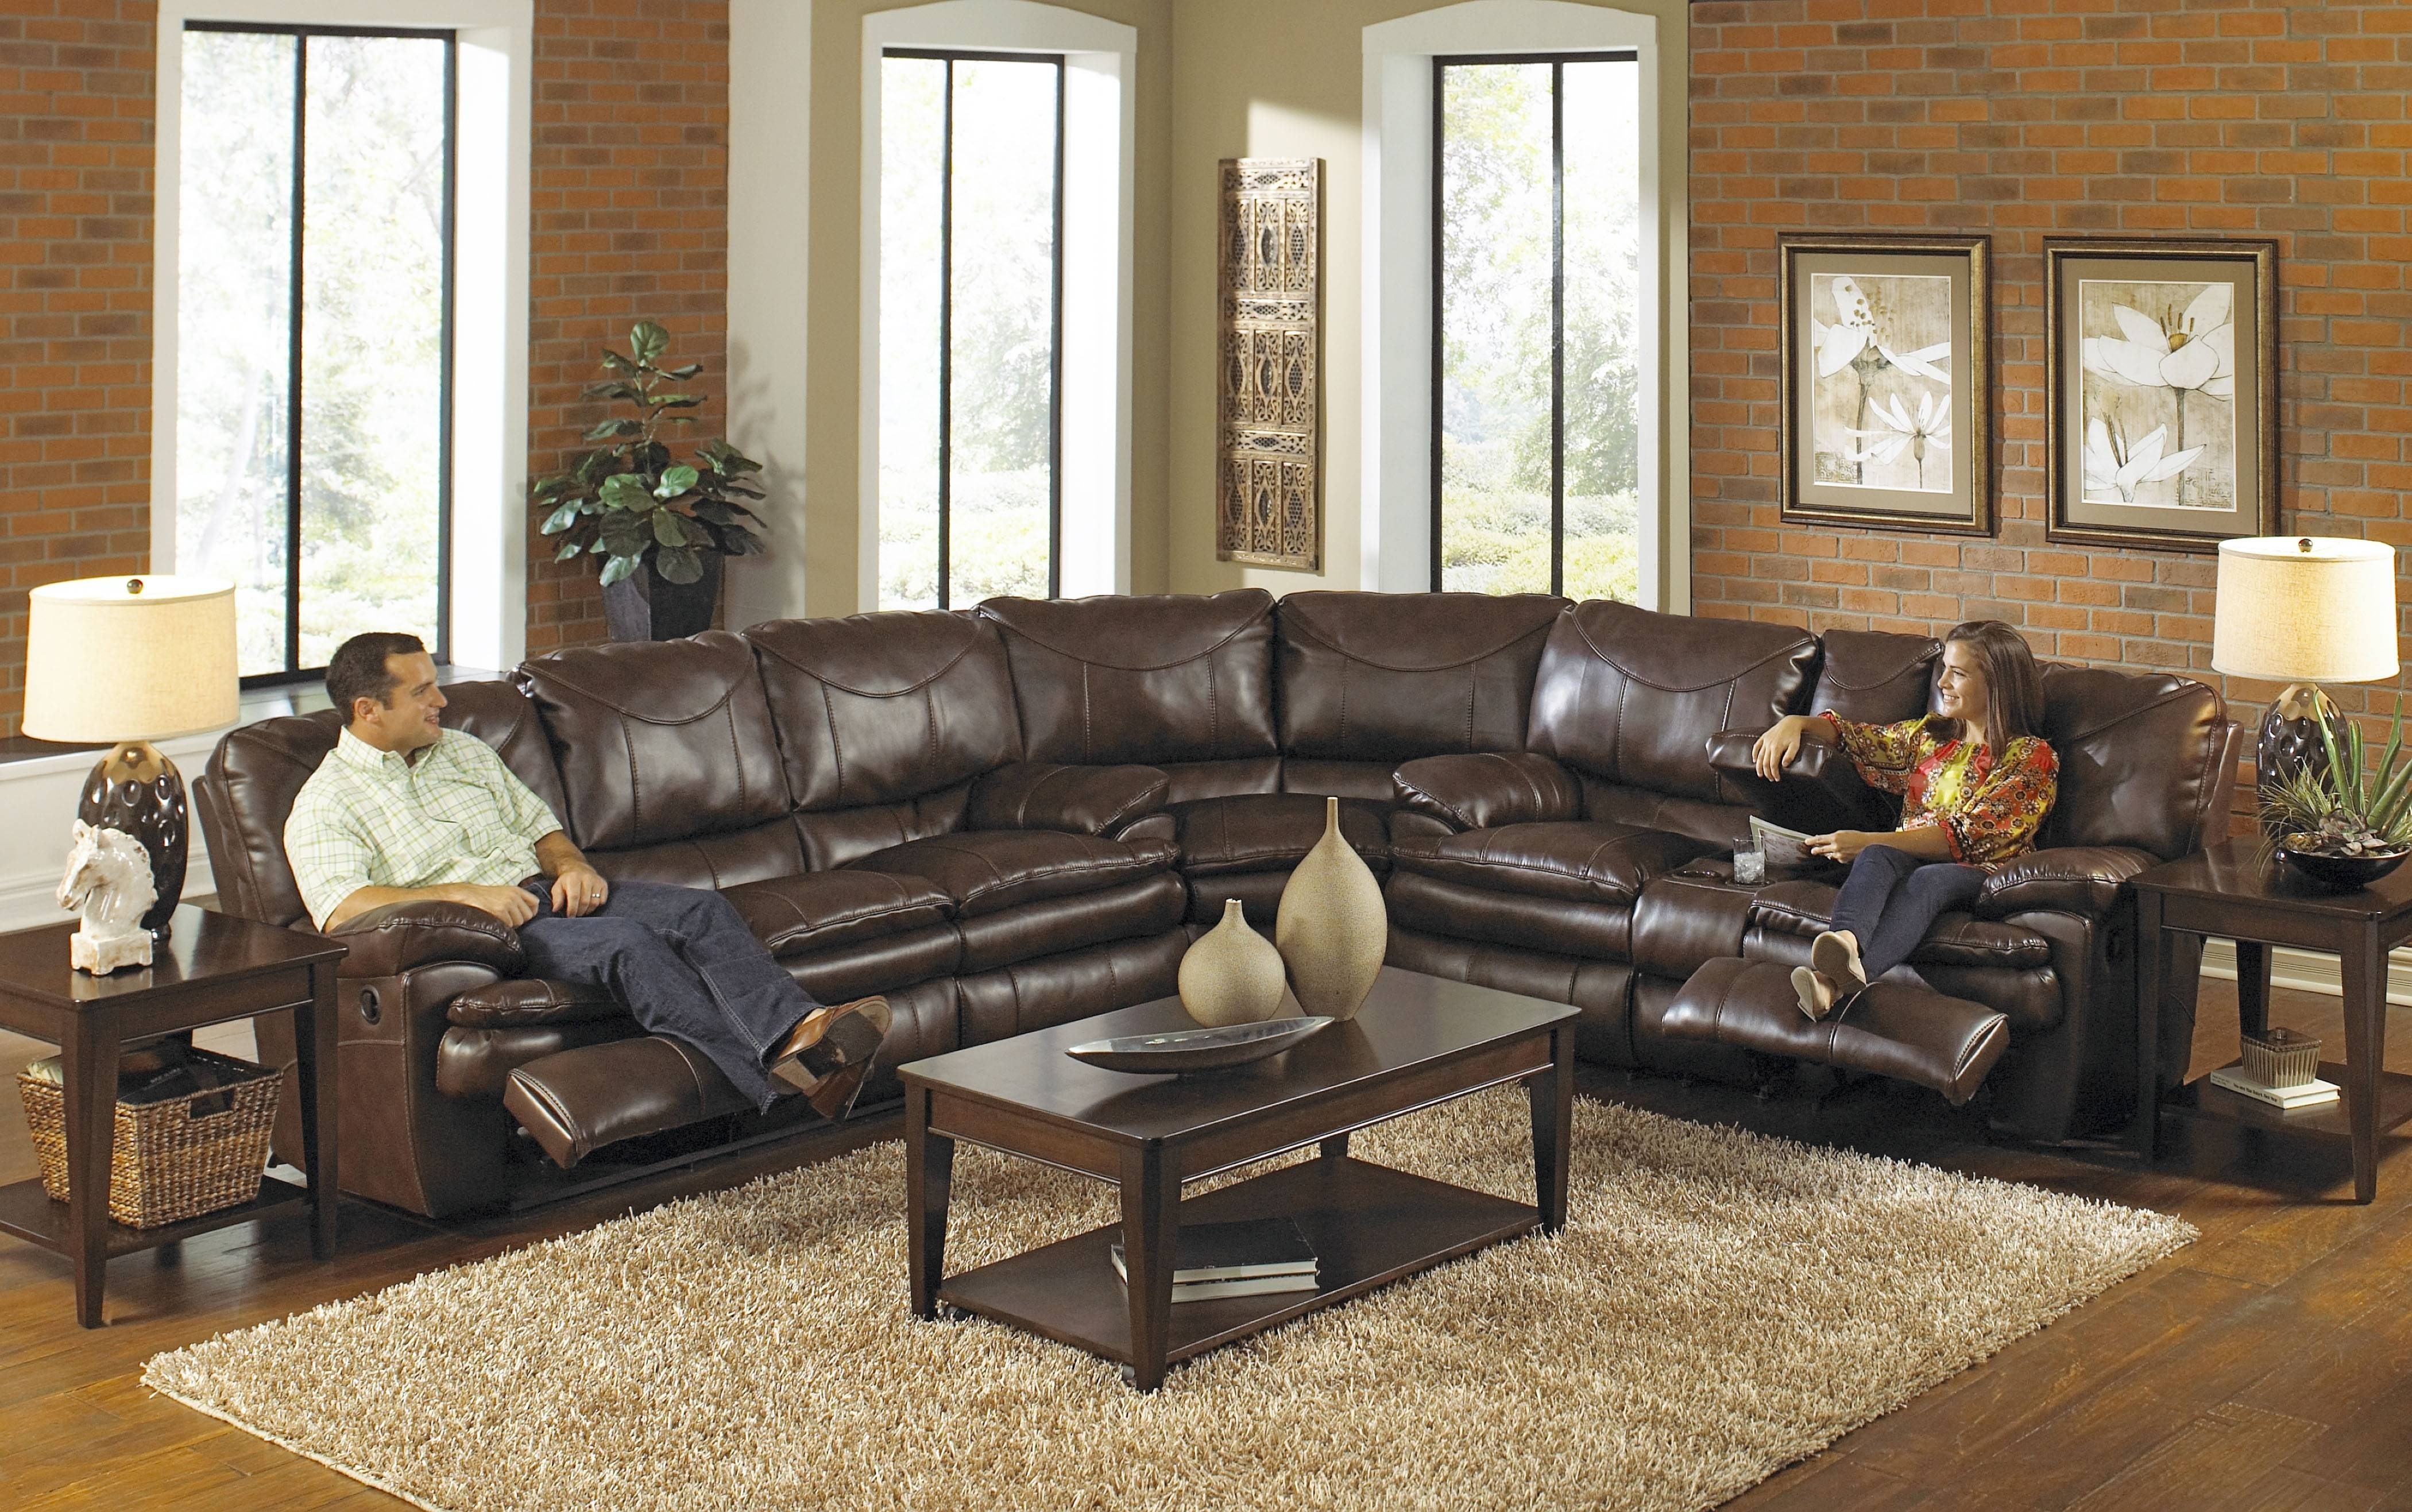 Sofas Center : Power Reclining Sectional Sofa Menzilperde Net intended for Curved Sectional Sofa With Recliner (Image 28 of 30)